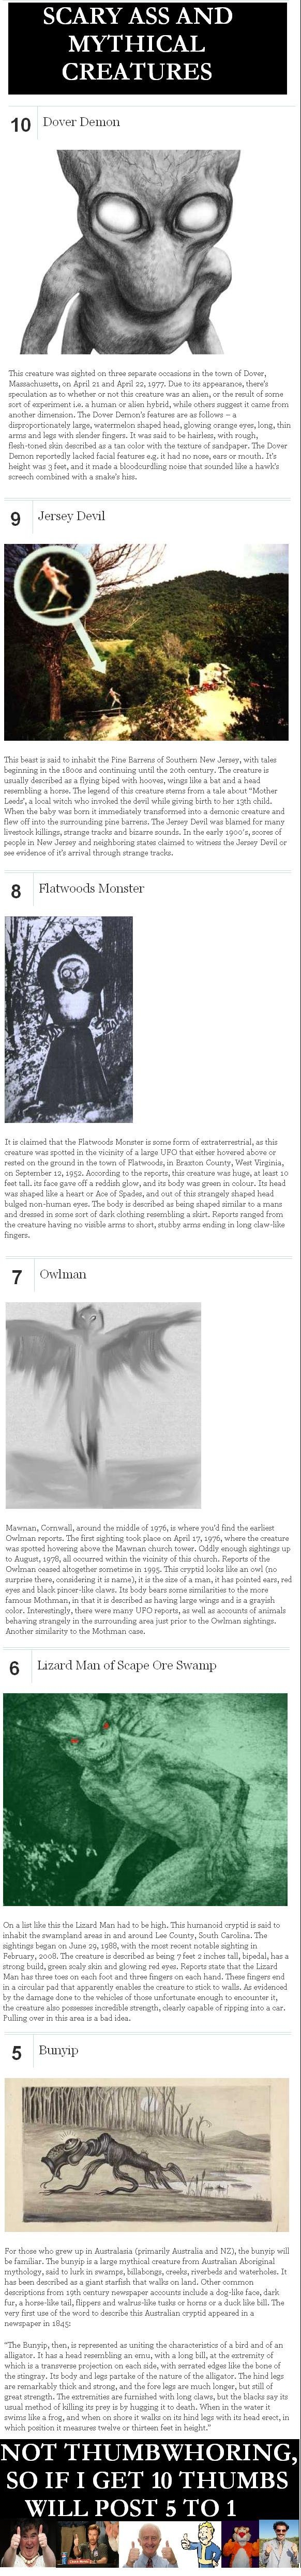 boogy boo!! list (myth list). . SCARY ASS AND MYTHICAL CREATURES 1 Dover Demon Thu: creature was sighted on three separate occasions In the town of Dover, Massa